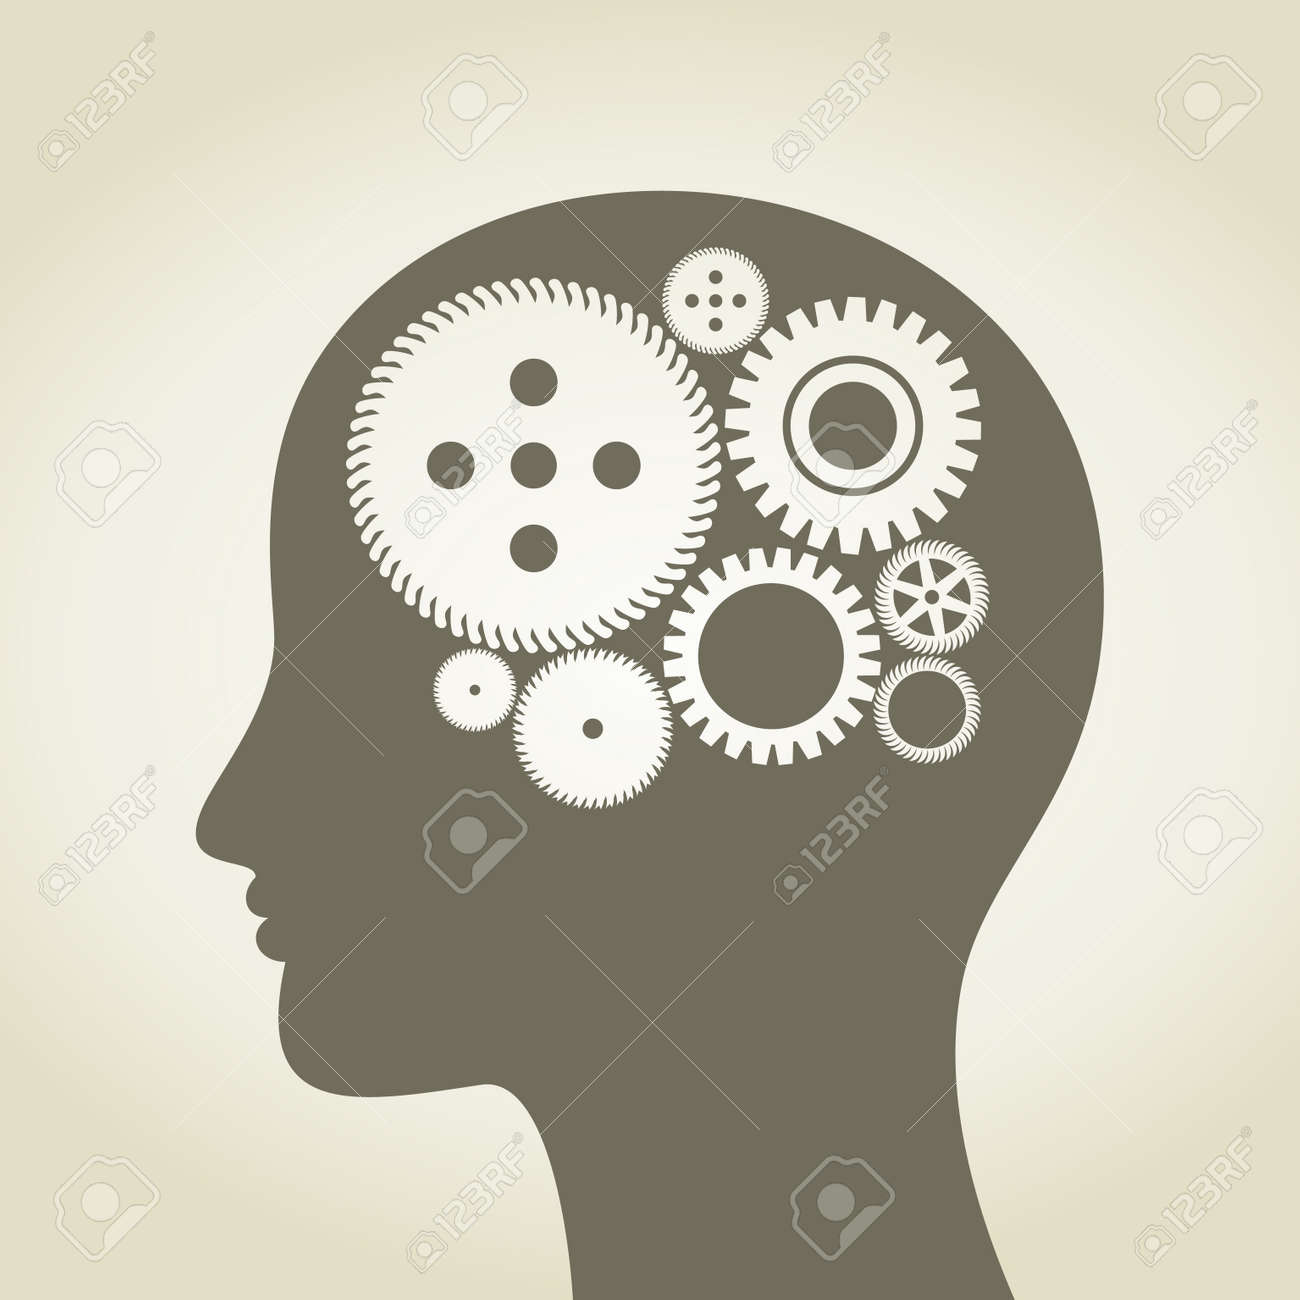 Gear wheel in a head of the person Stock Vector - 14764498